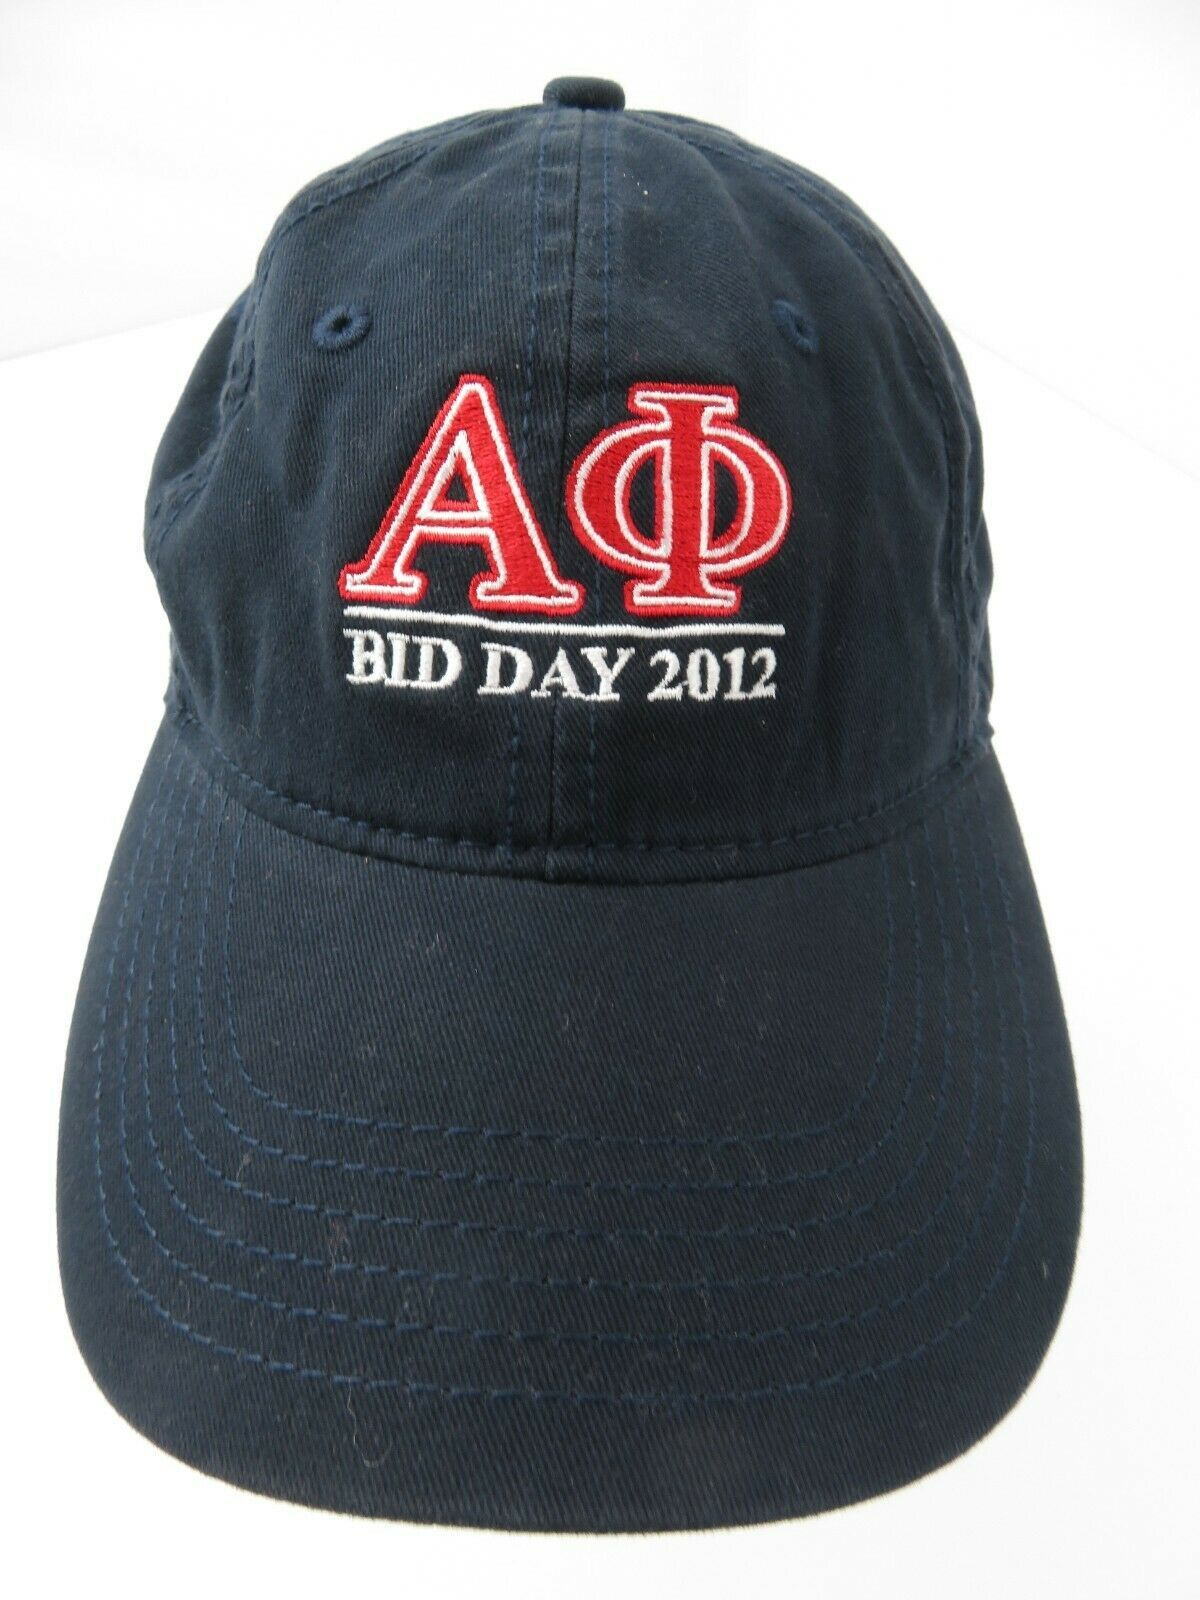 Primary image for Bid Day 2012 Adjustable Adult Cap Hat